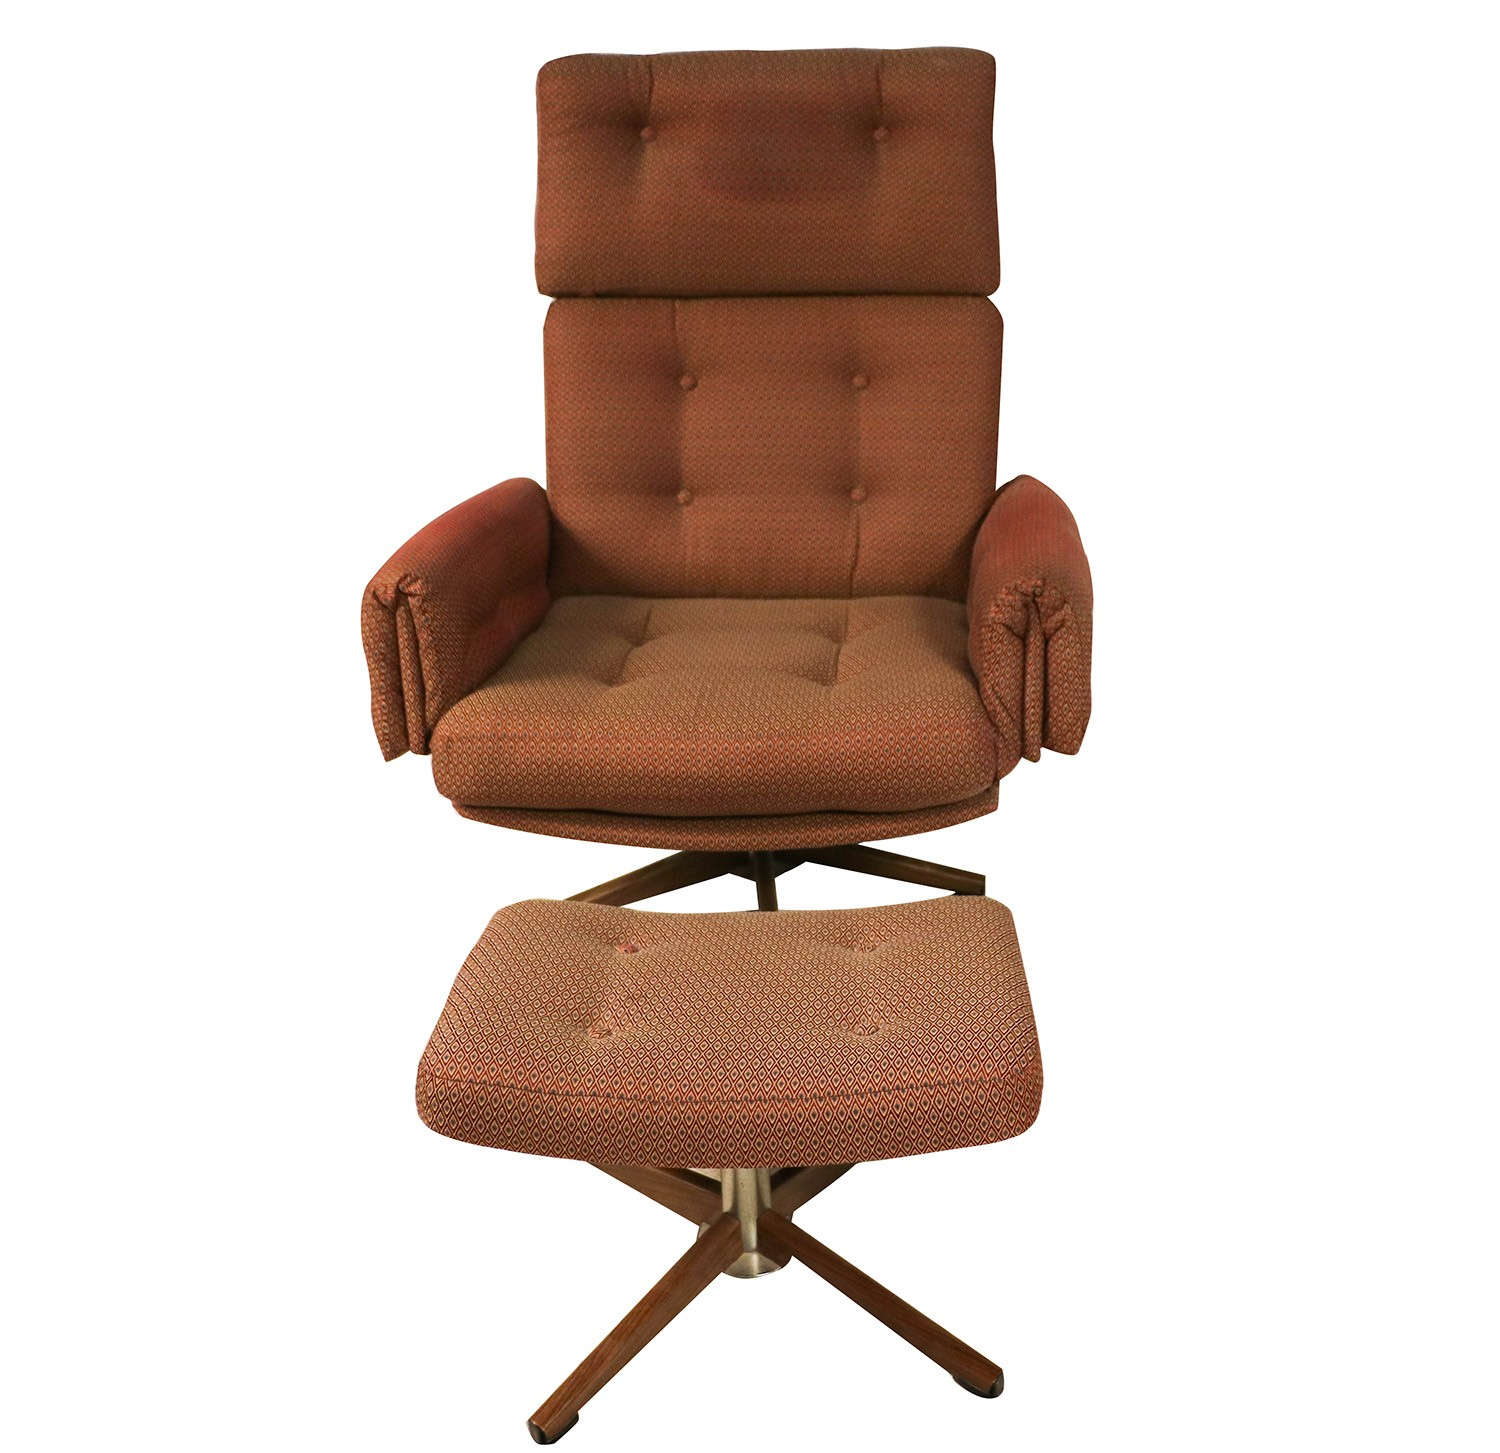 Mid Century Modern Split Level 1956 Edition Better Homes: Mid Century Lounge Chair And Ottoman